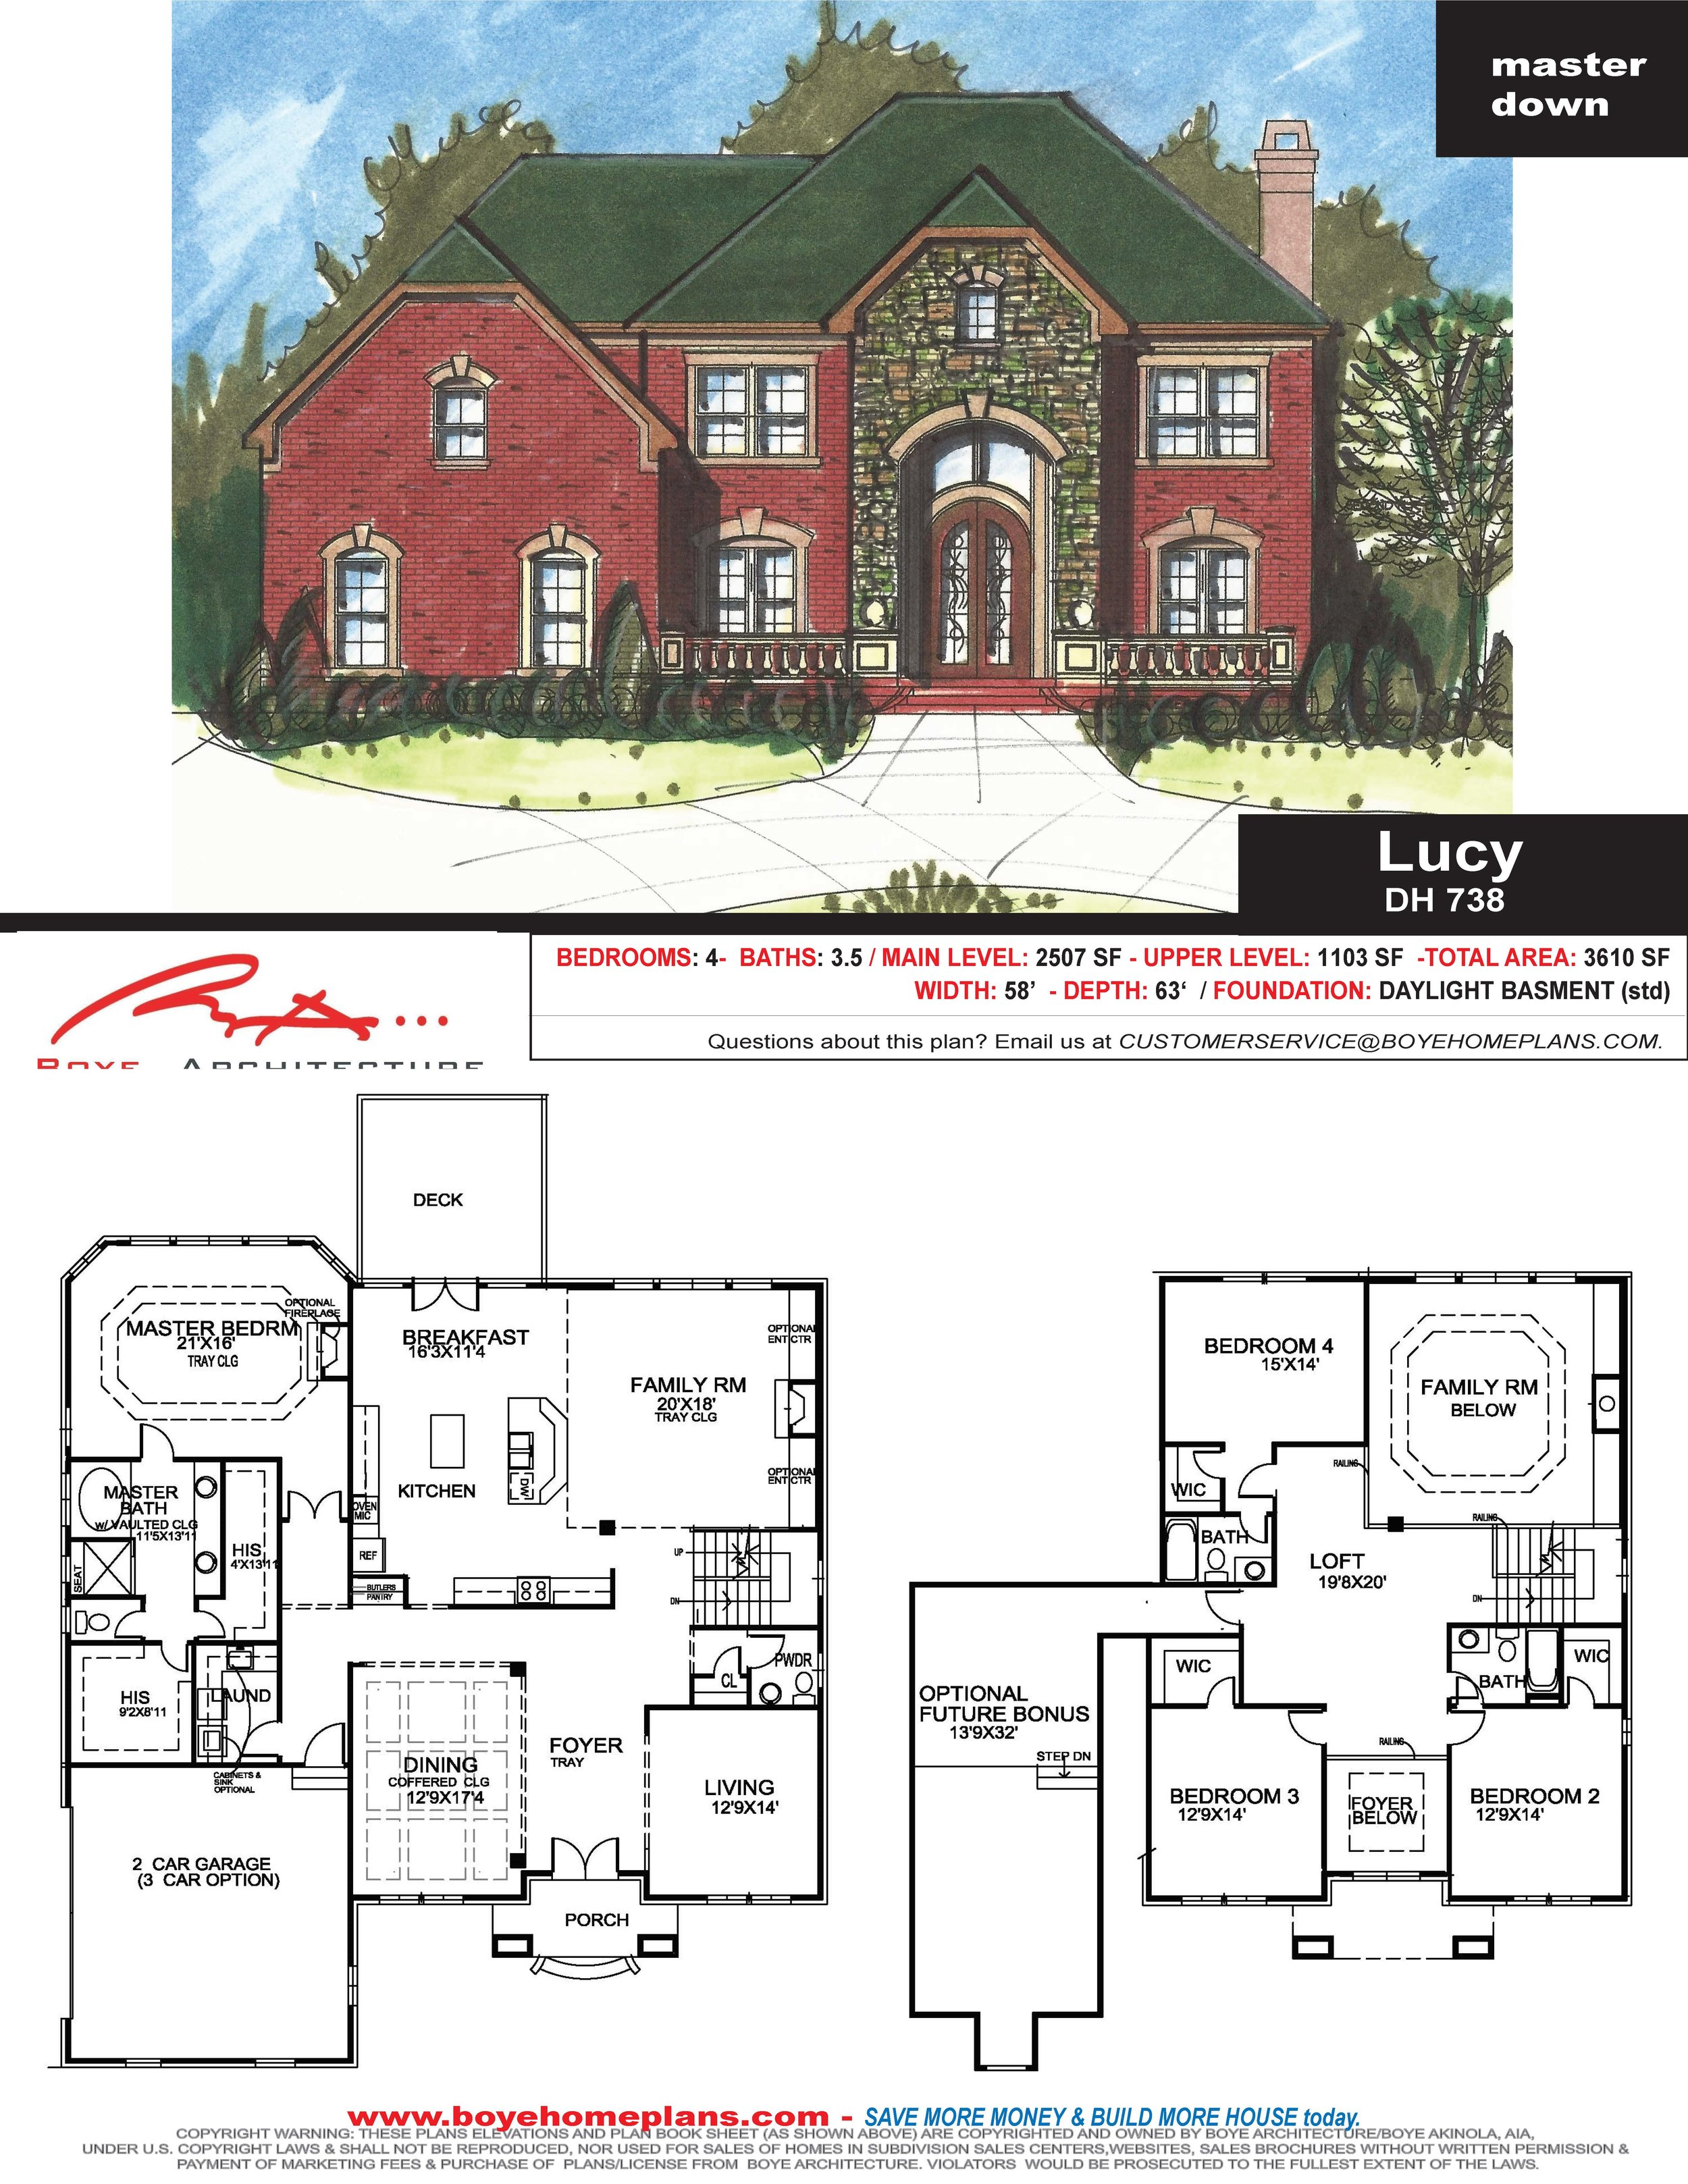 LUCY PLAN PAGE-DH 738-081917.jpg